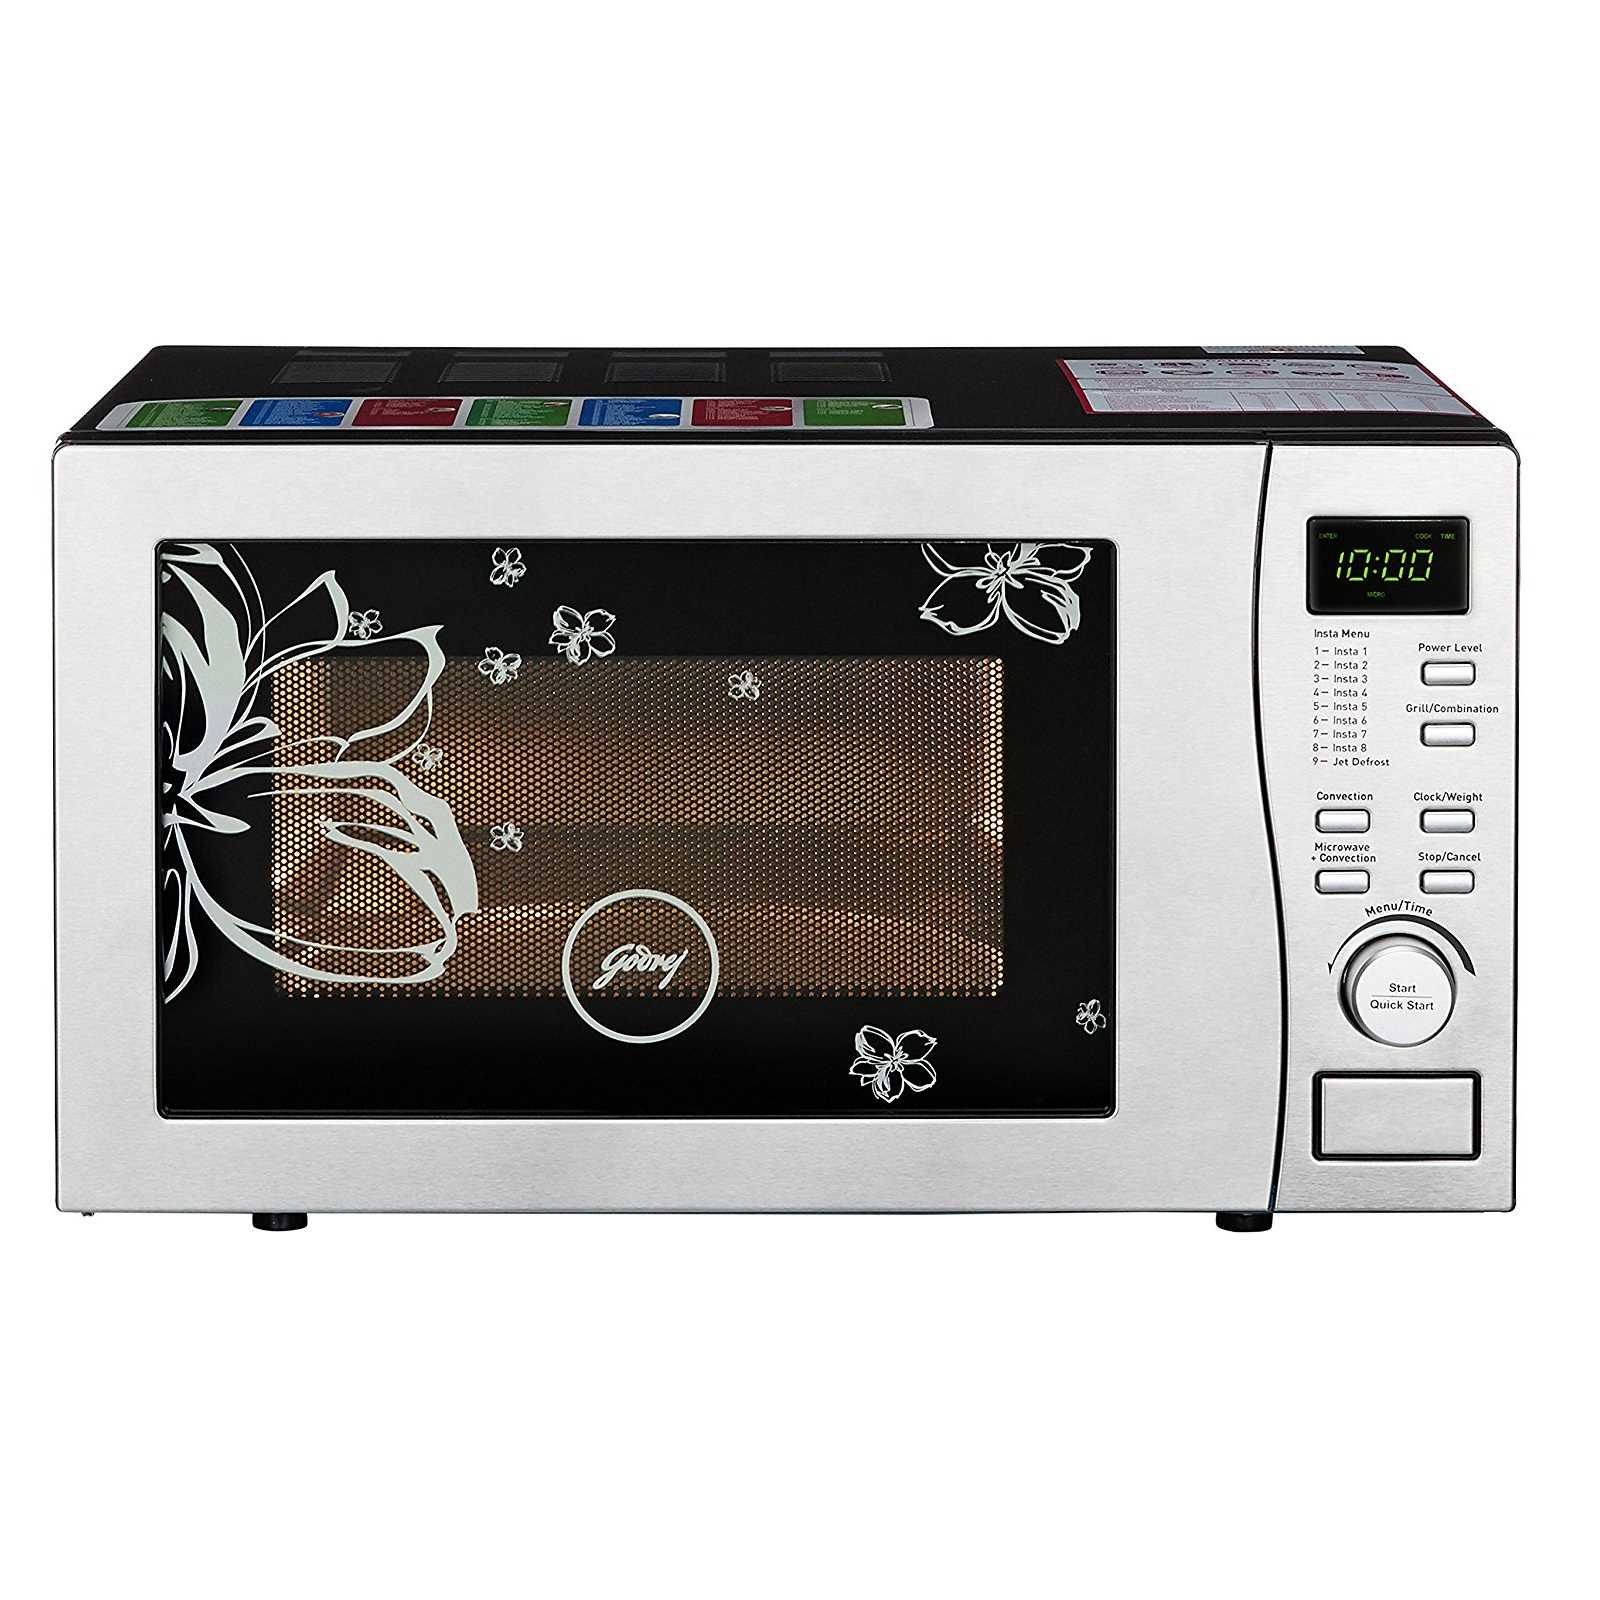 Godrej GMX 519 CP1 19 Litres Convection Microwave Oven